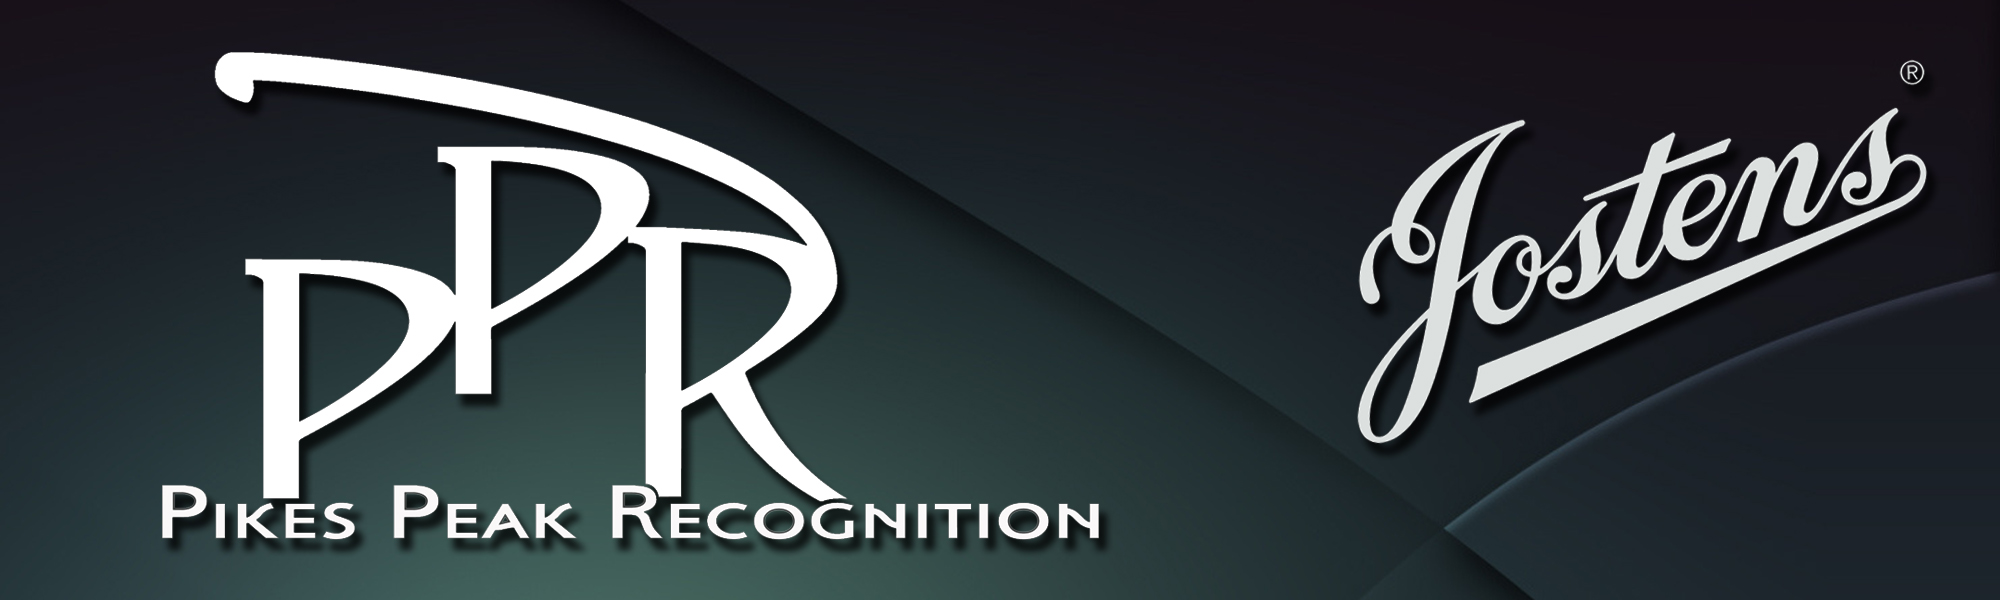 Pikes Peak Recognition Logo